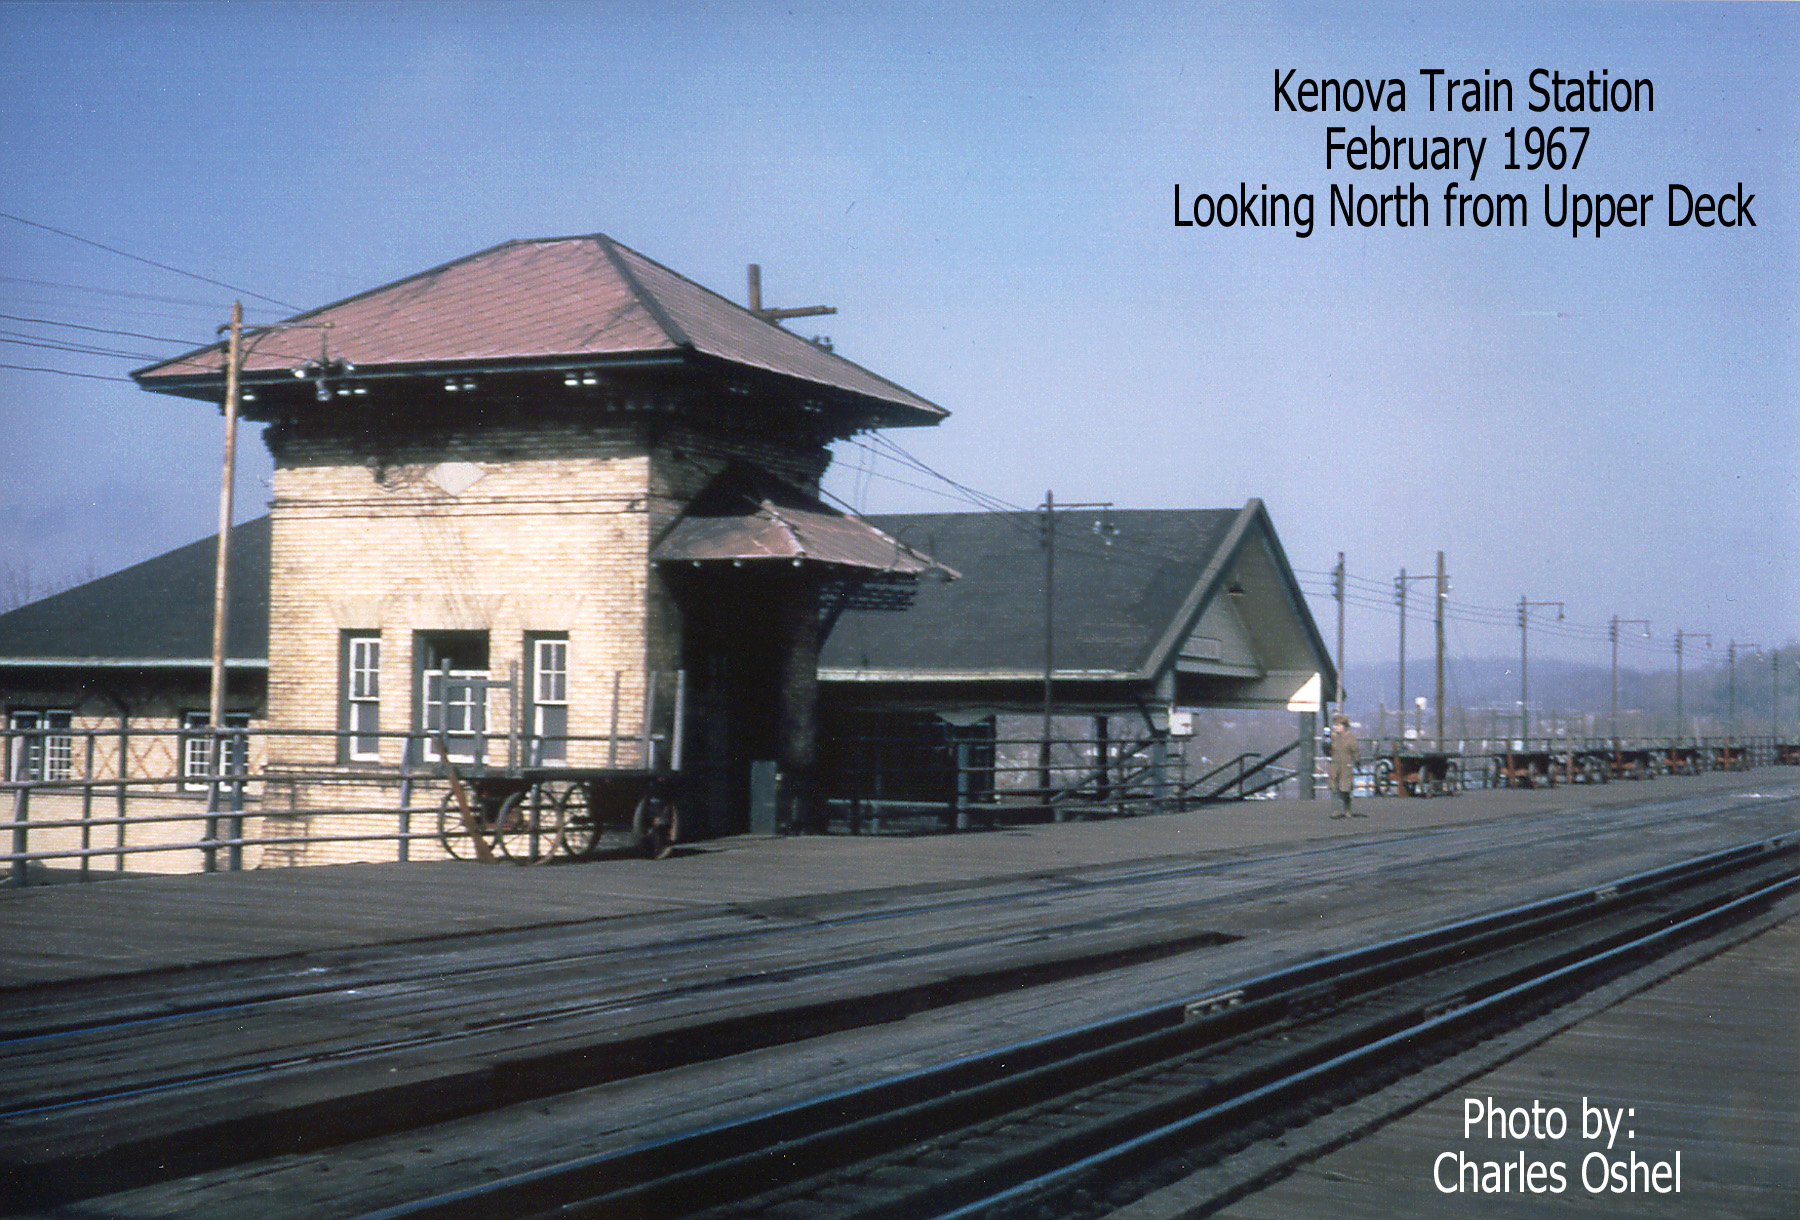 Looking north from the upper deck. Image courtesy of the Kenova Historical Commission.